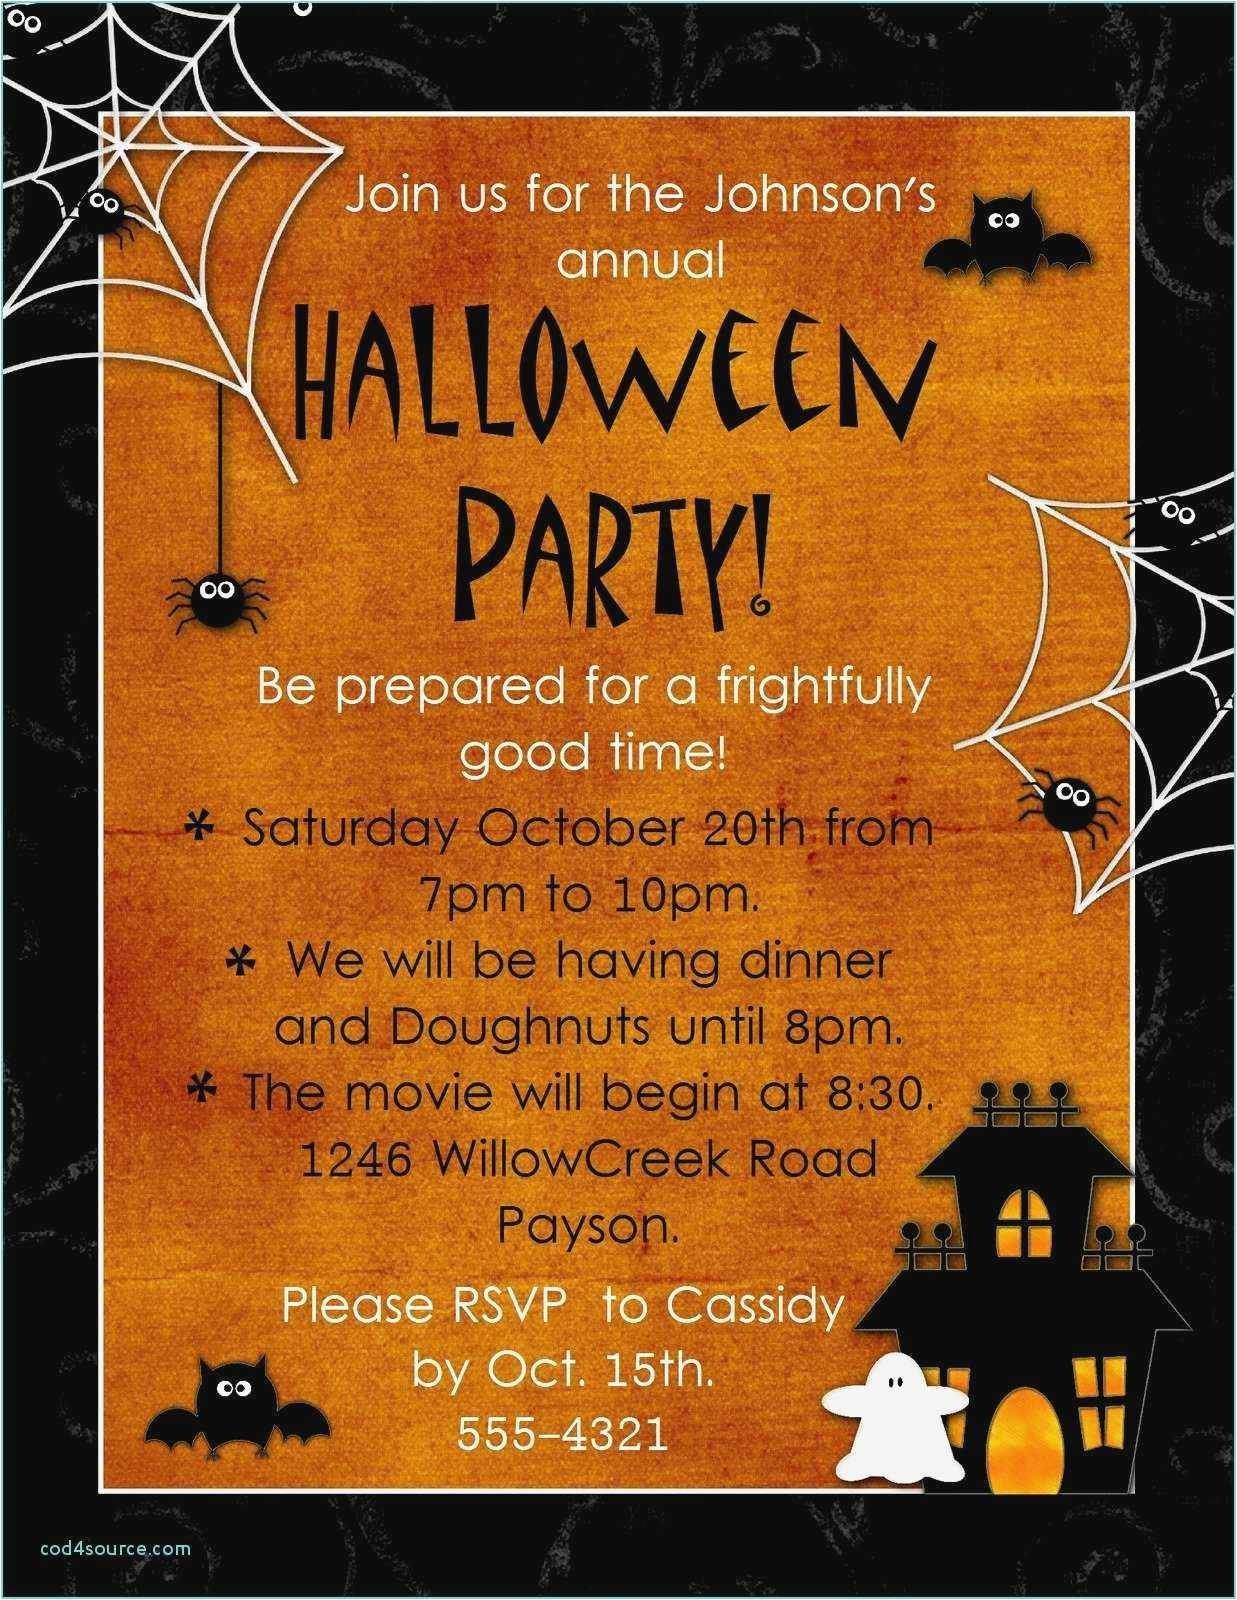 Halloween Cards Ideas Inspirational Free Download 50 Free Printable Invit Party Invite Template Halloween Party Invitation Template Halloween Party Invitations